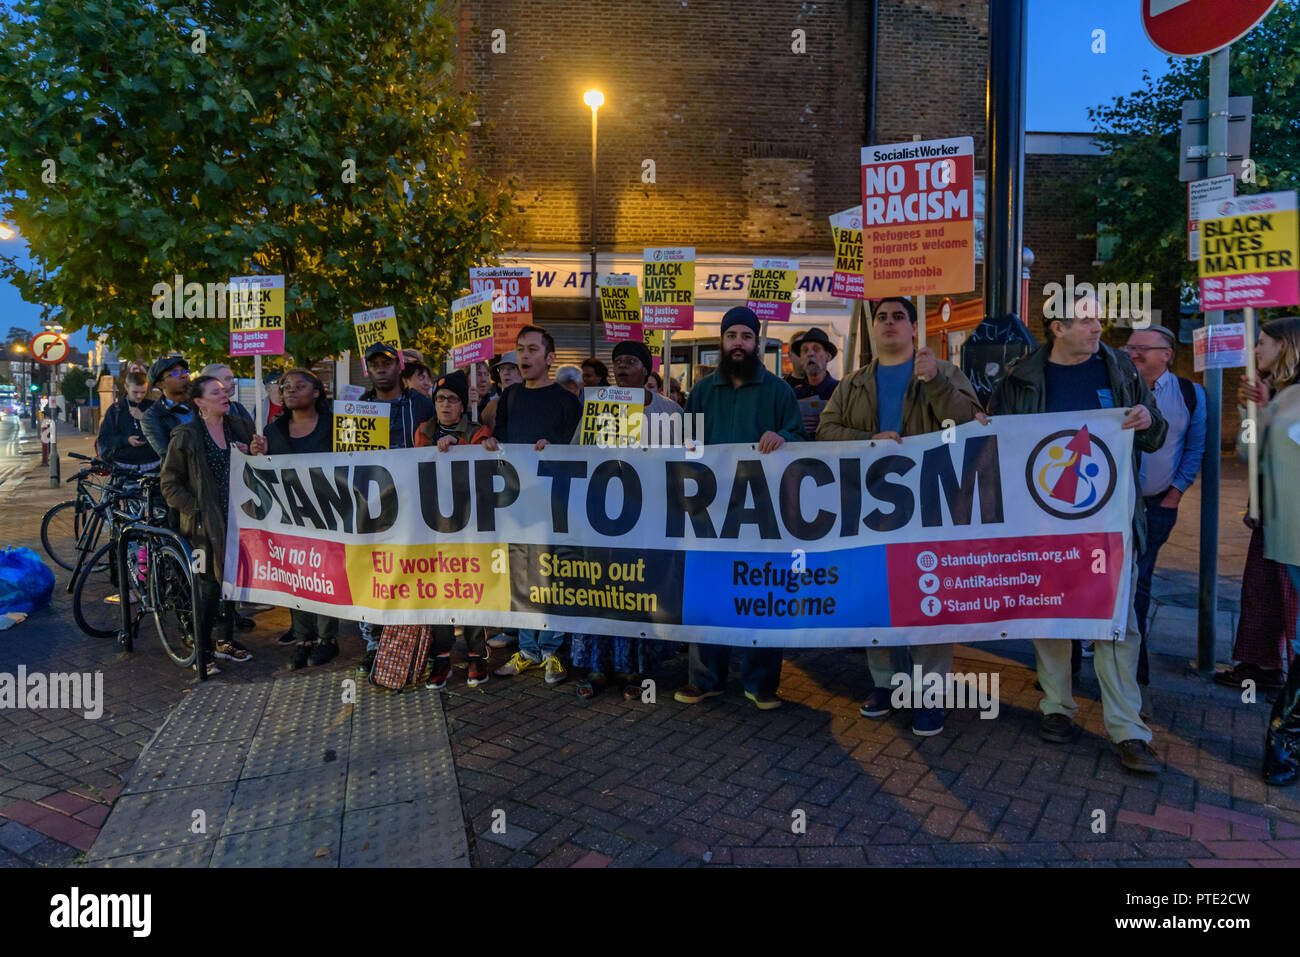 London, UK. October 9th 2018. People pose behind the Stand Up to Racism banner at the rally outside the New Atlas Cafe Restaurant where a young black man was attacked by police who used obviously unnecessary force when arresting him on suspicion of having been involved in a knife attack. He was assaulted by six officers, and was viciously kicked while officers struggled to handcuff him, andwhen he was well under control and held on the ground he was sprayed in the face with CS gas. Credit: Peter Marshall/Alamy Live News - Stock Image